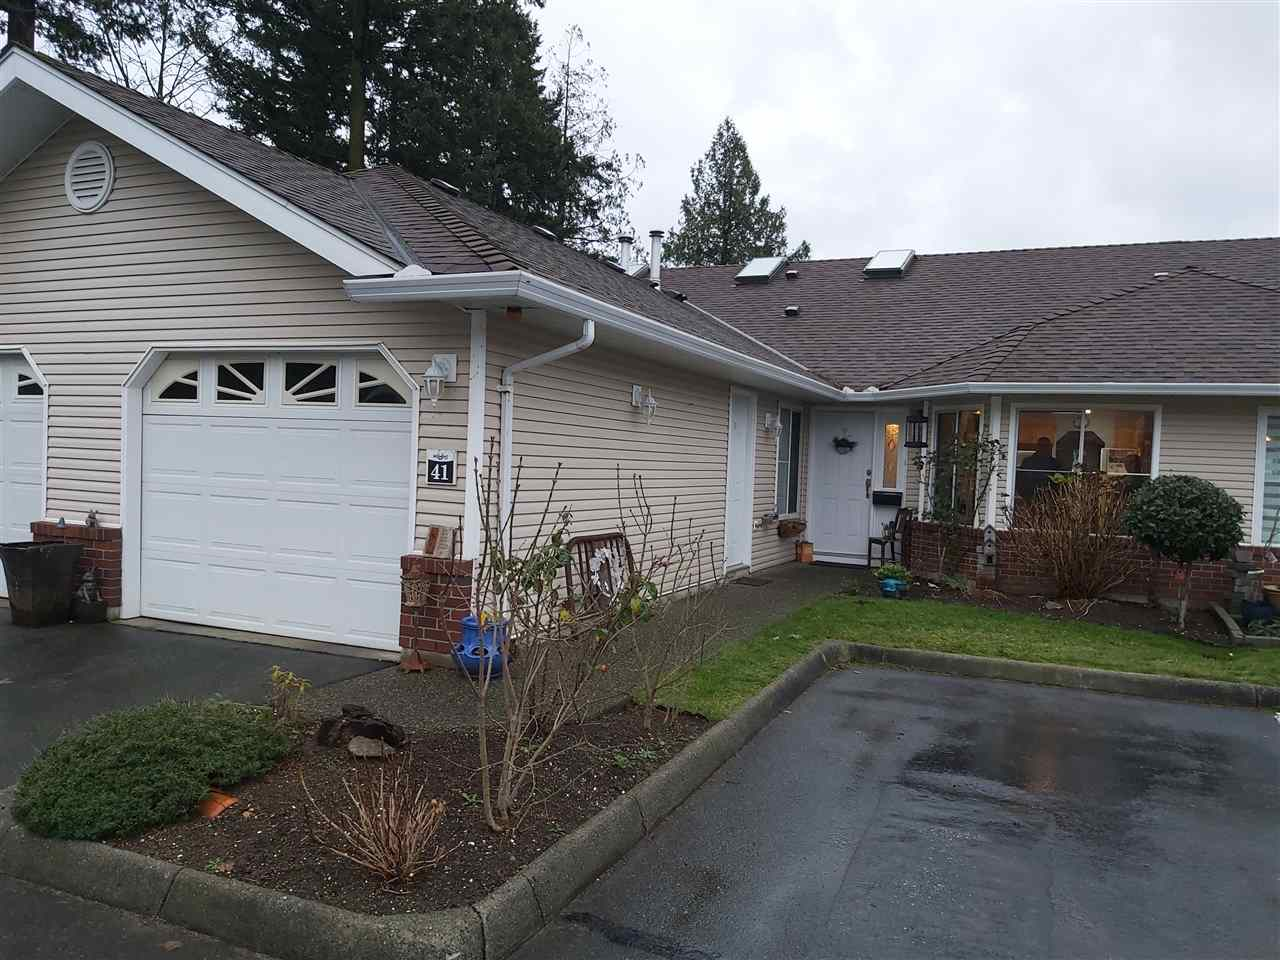 41 1973 WINFIELD DRIVE - Abbotsford East Townhouse for sale, 3 Bedrooms (R2525480) - #1